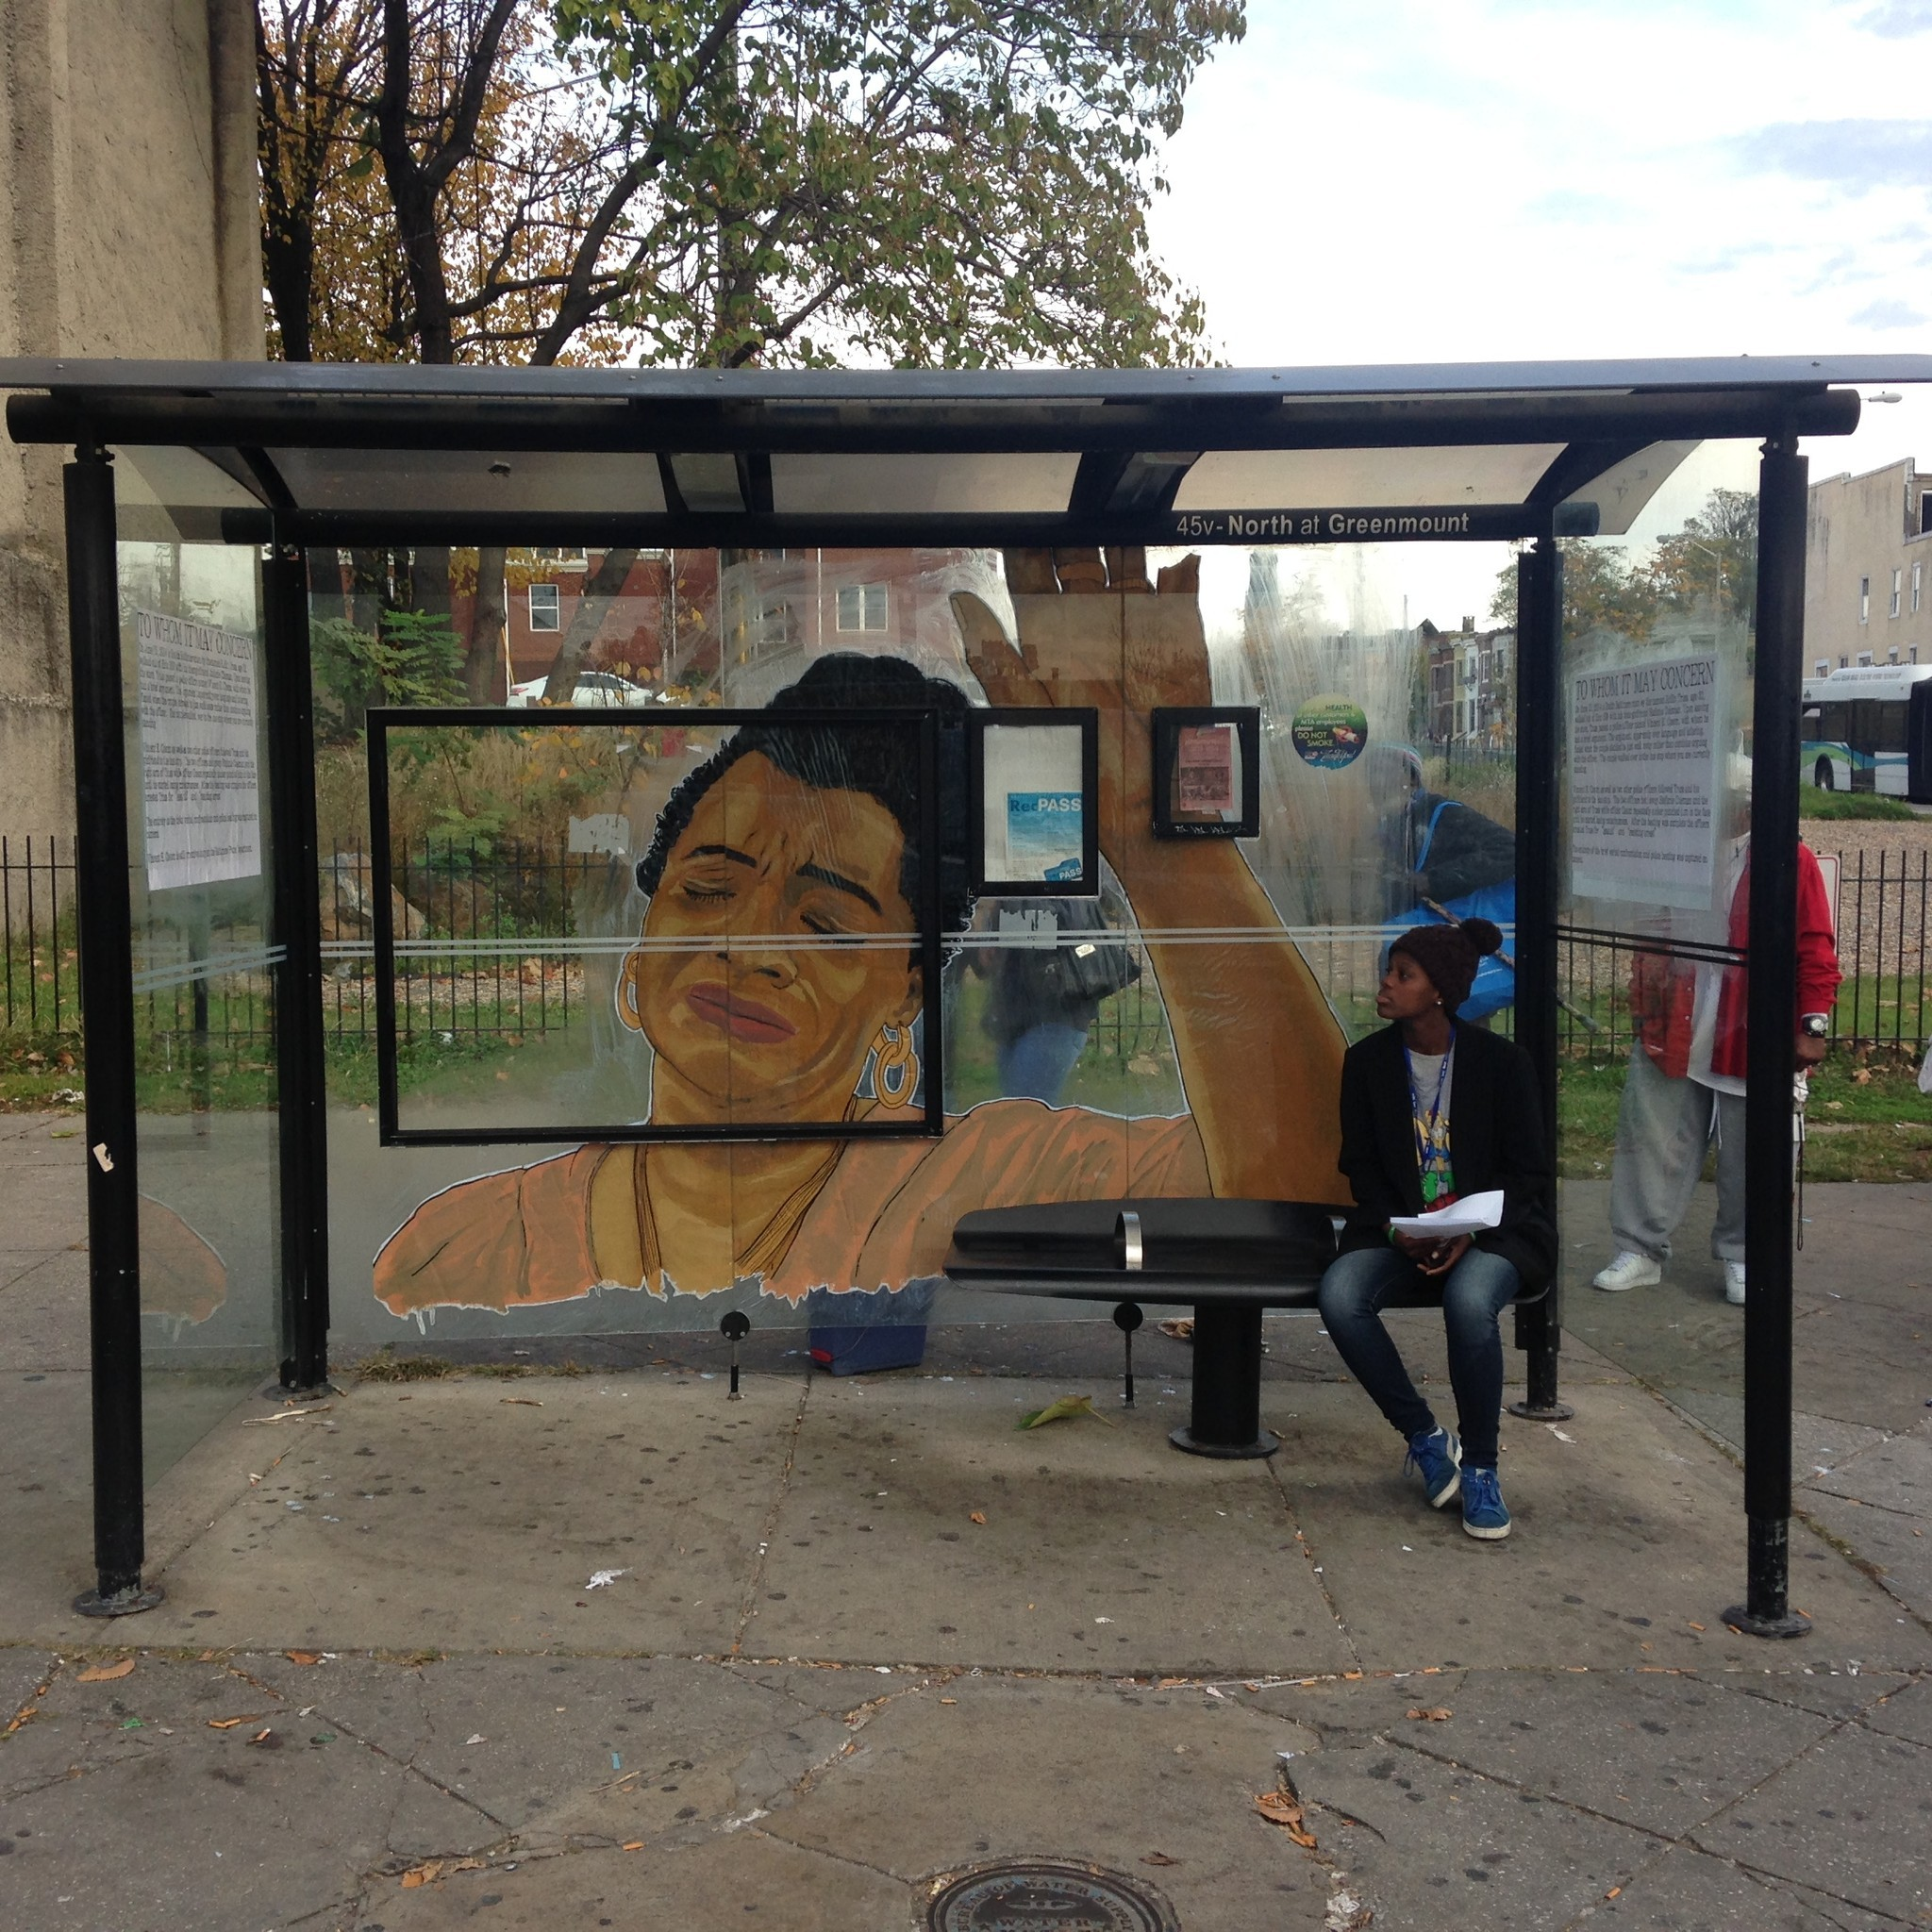 Local Street Artist Nether Creates Work On Bus Stop Where